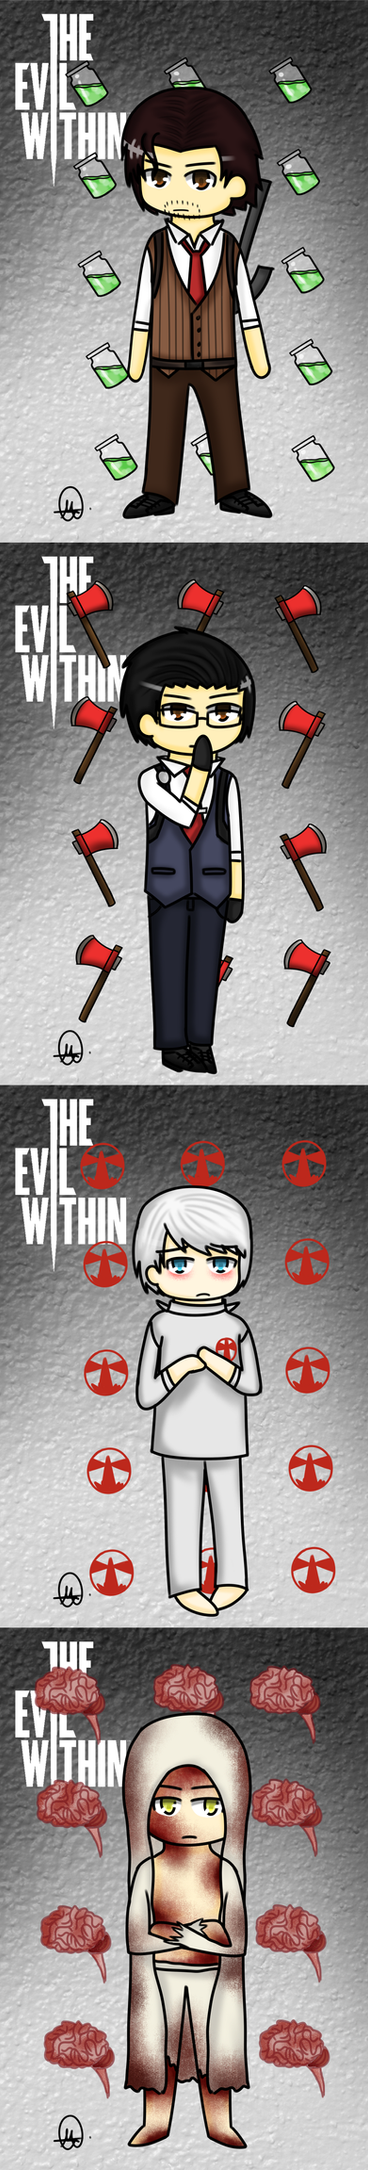 The Evil Within Characters by Therapii